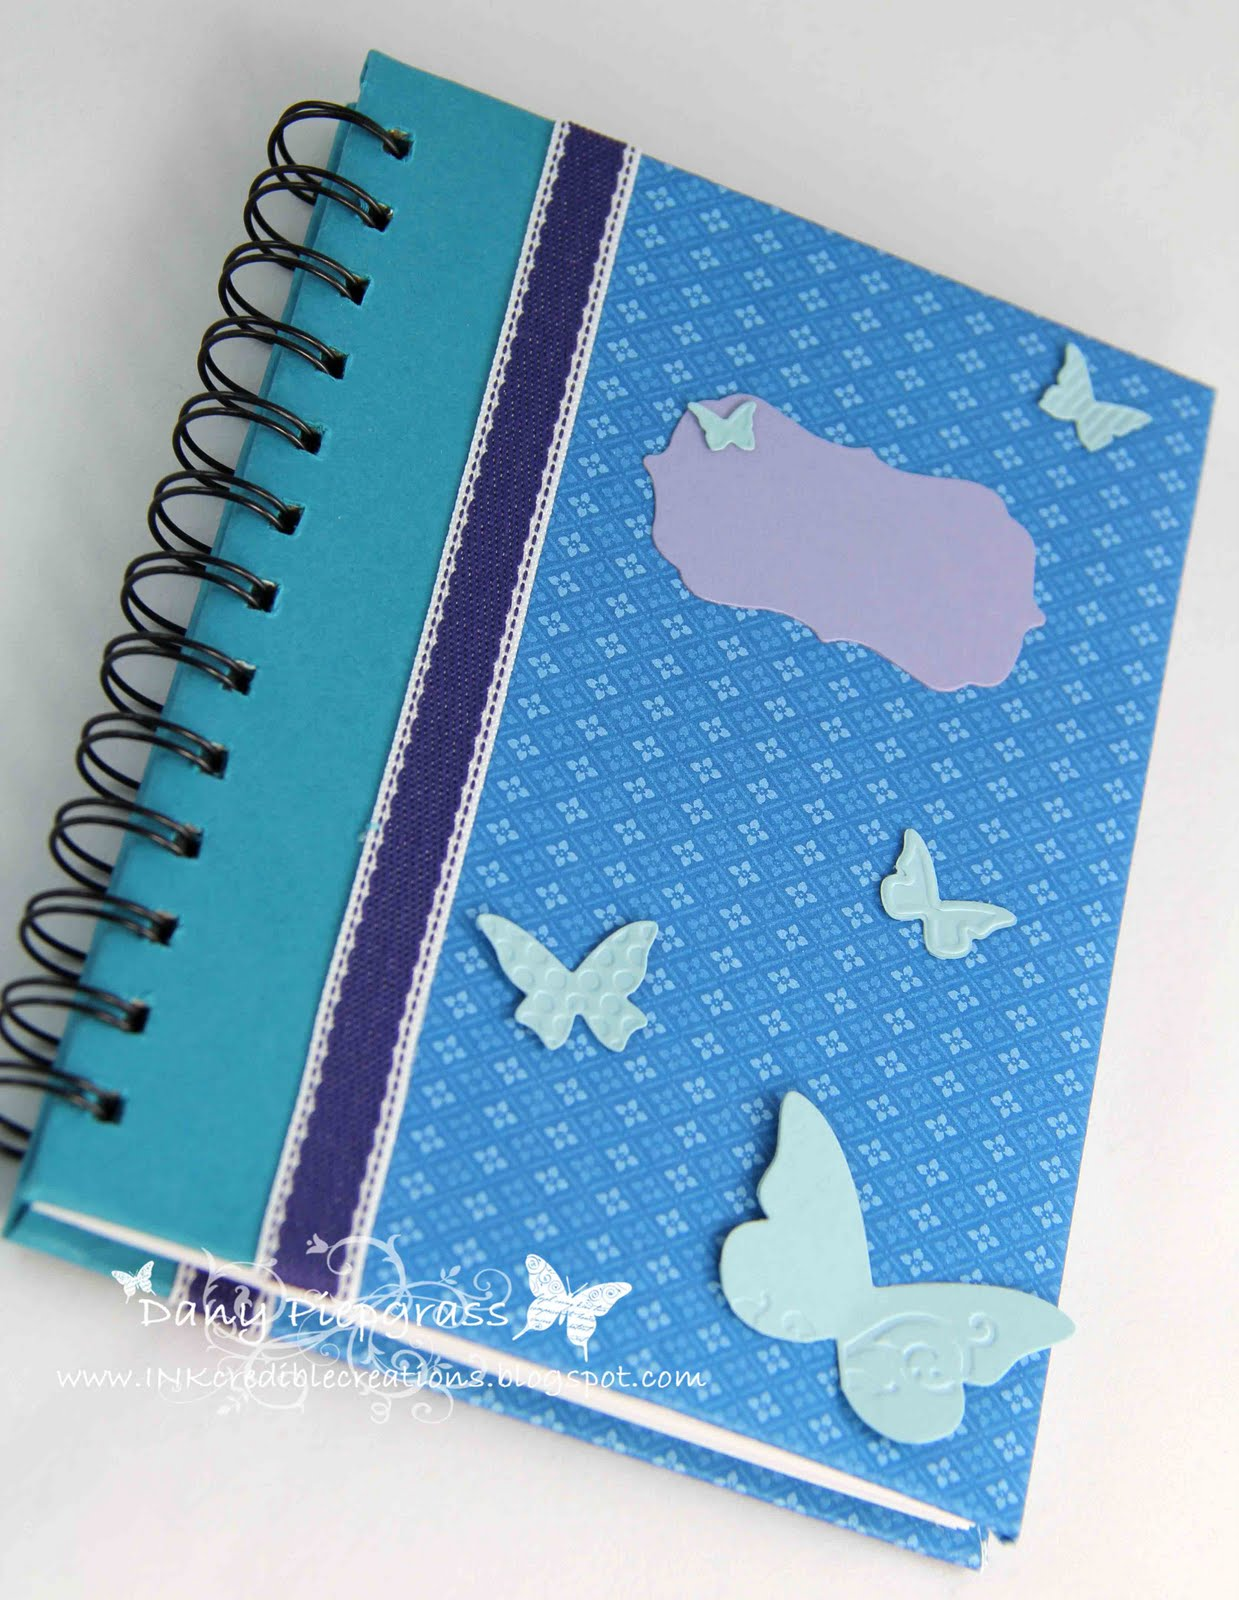 Inkcredible creations roomie gifts for convention for Back to school notebook decoration ideas